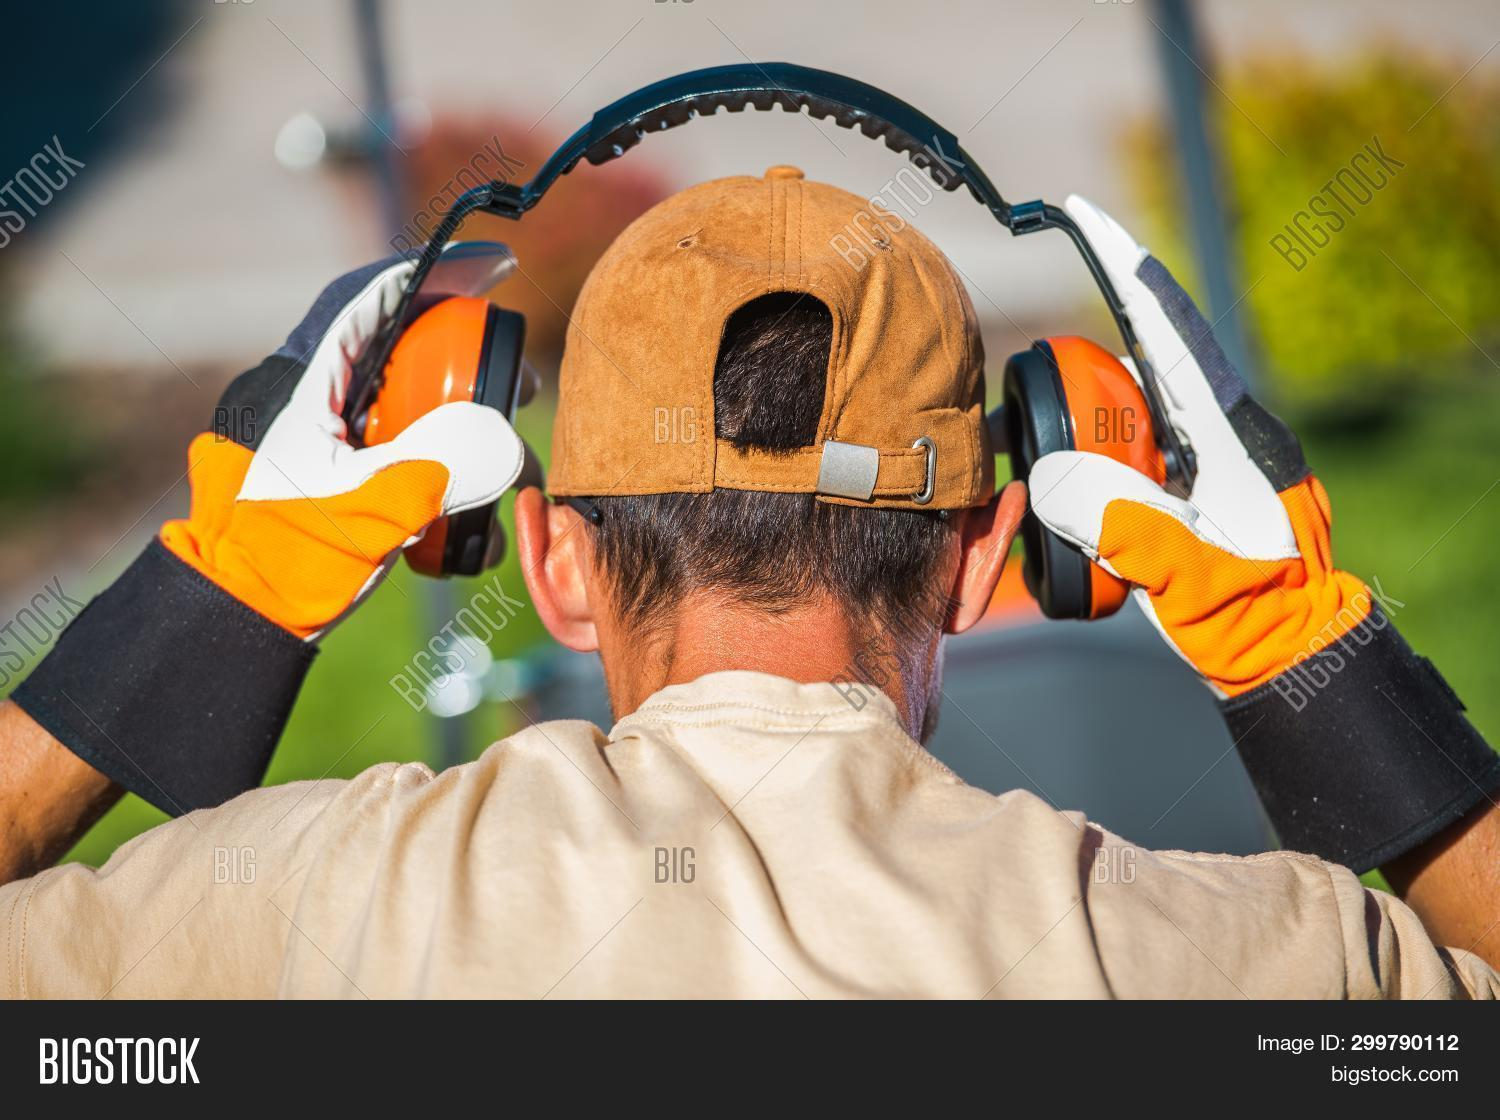 ear,headphones,hearing,industrial,industry,job,labor,loud,loudness,muffs,noise,object,reduction,safe,safety,technology,vestibule,worker